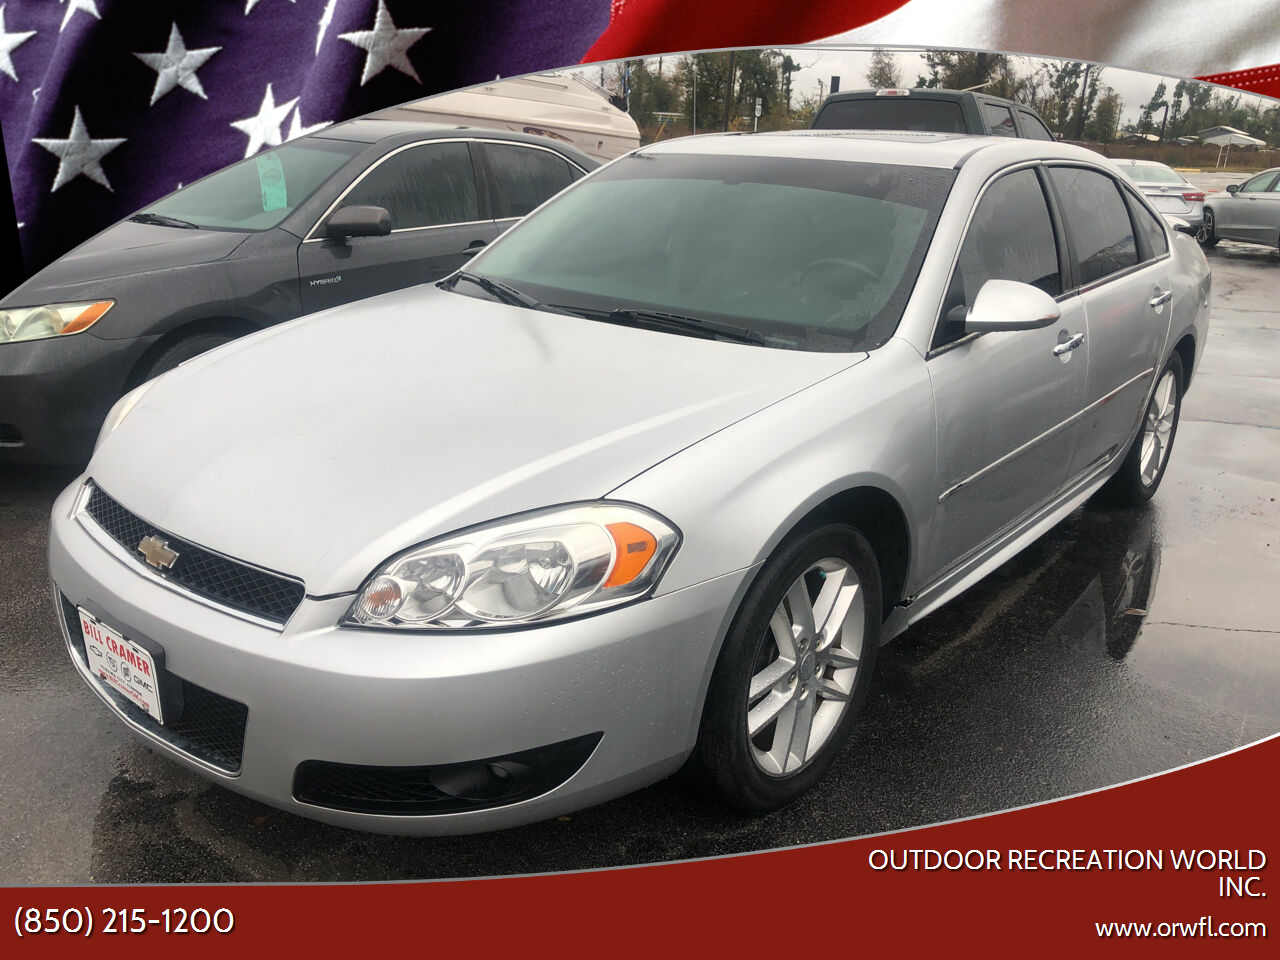 Used Chevrolet Impala For Sale In Panama City Fl Carsforsale Com